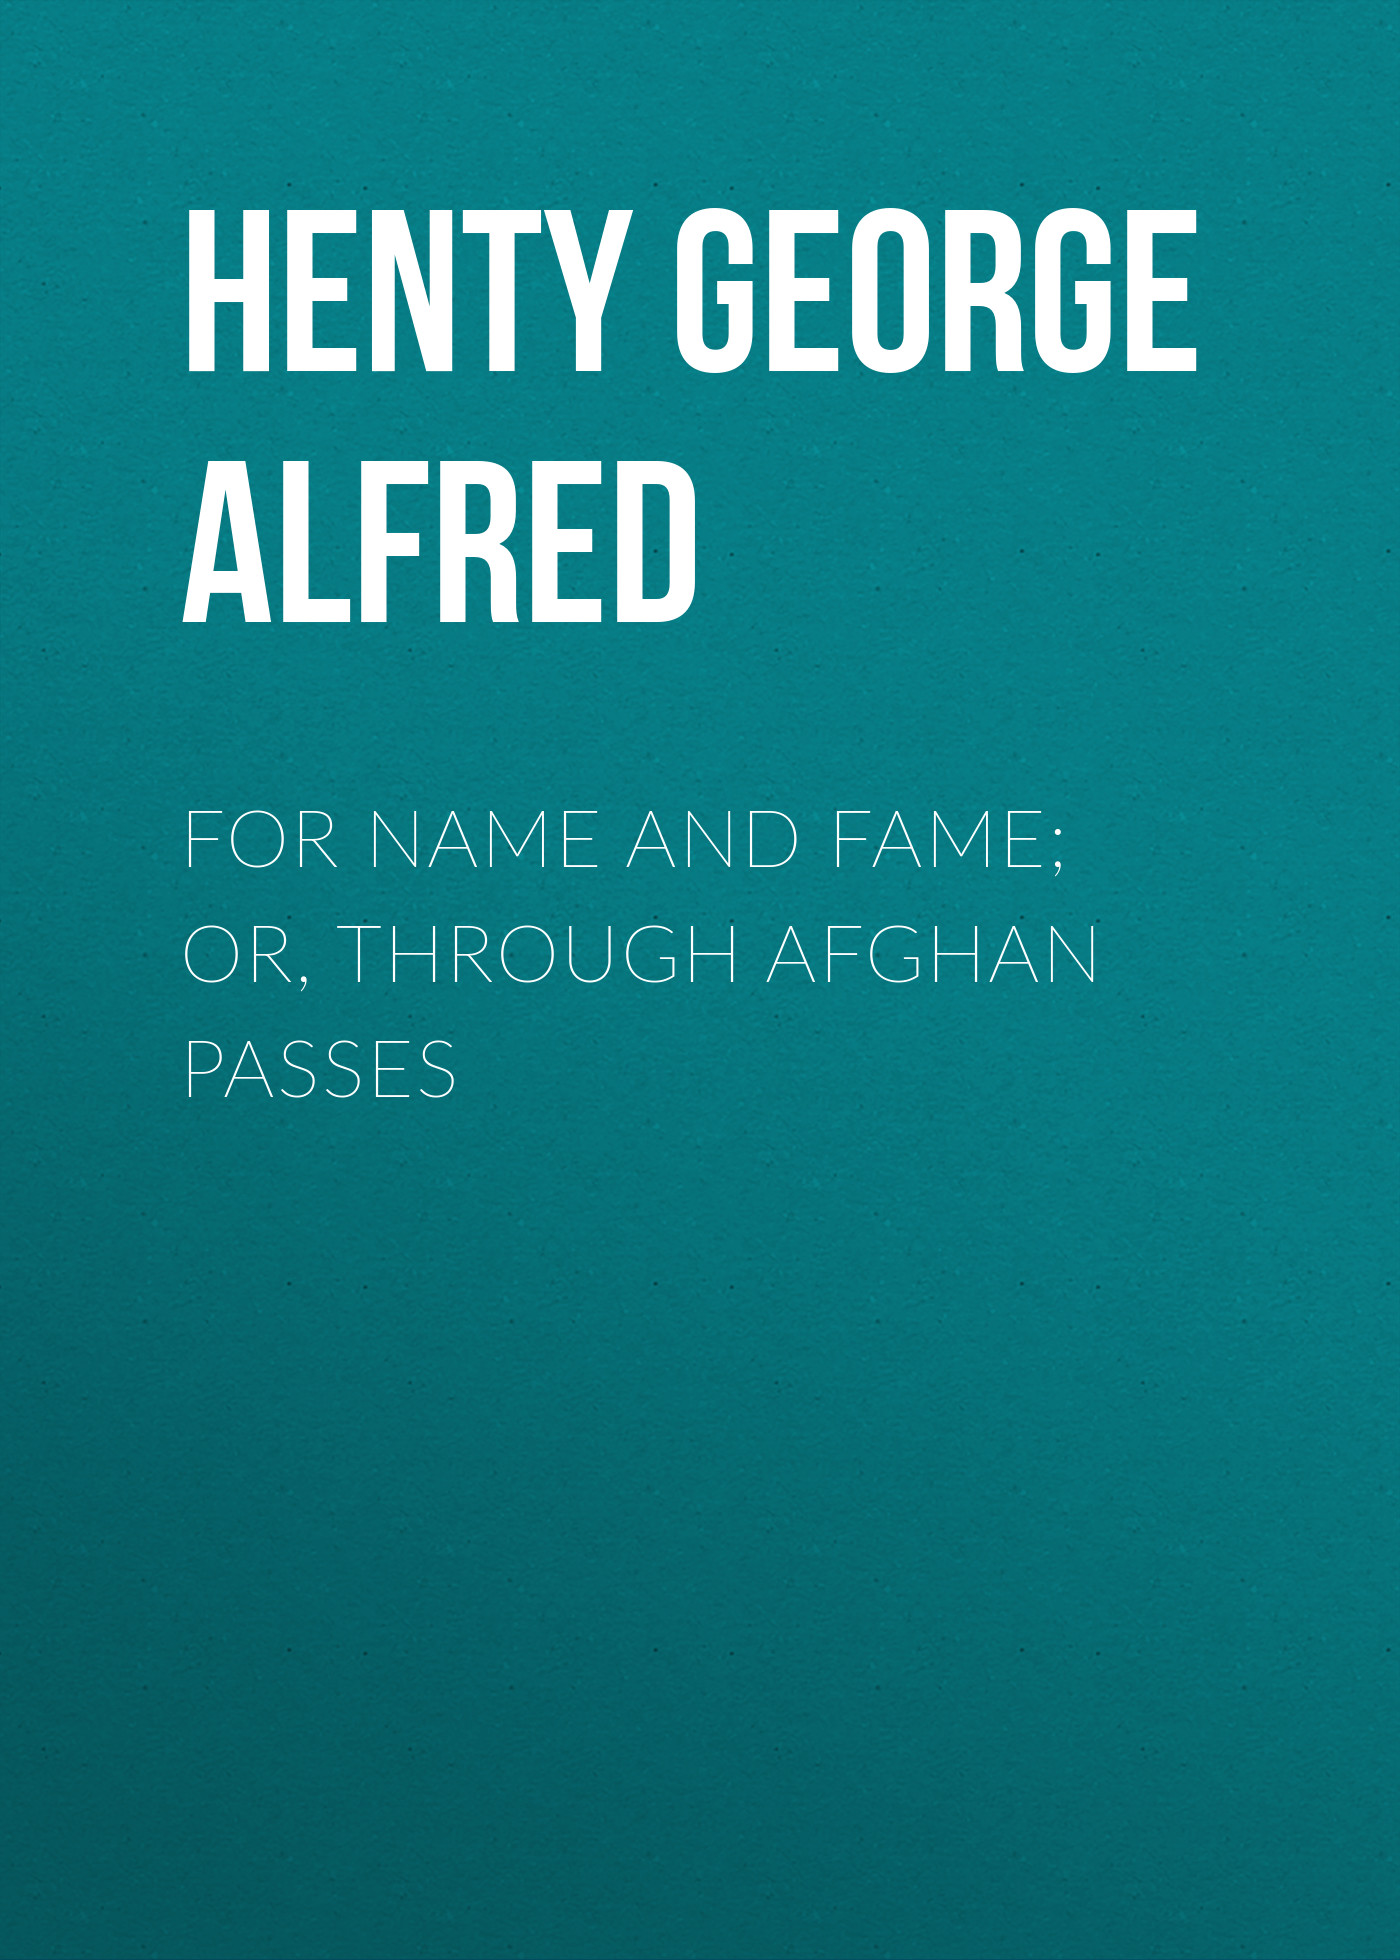 Henty George Alfred For Name and Fame; Or, Through Afghan Passes